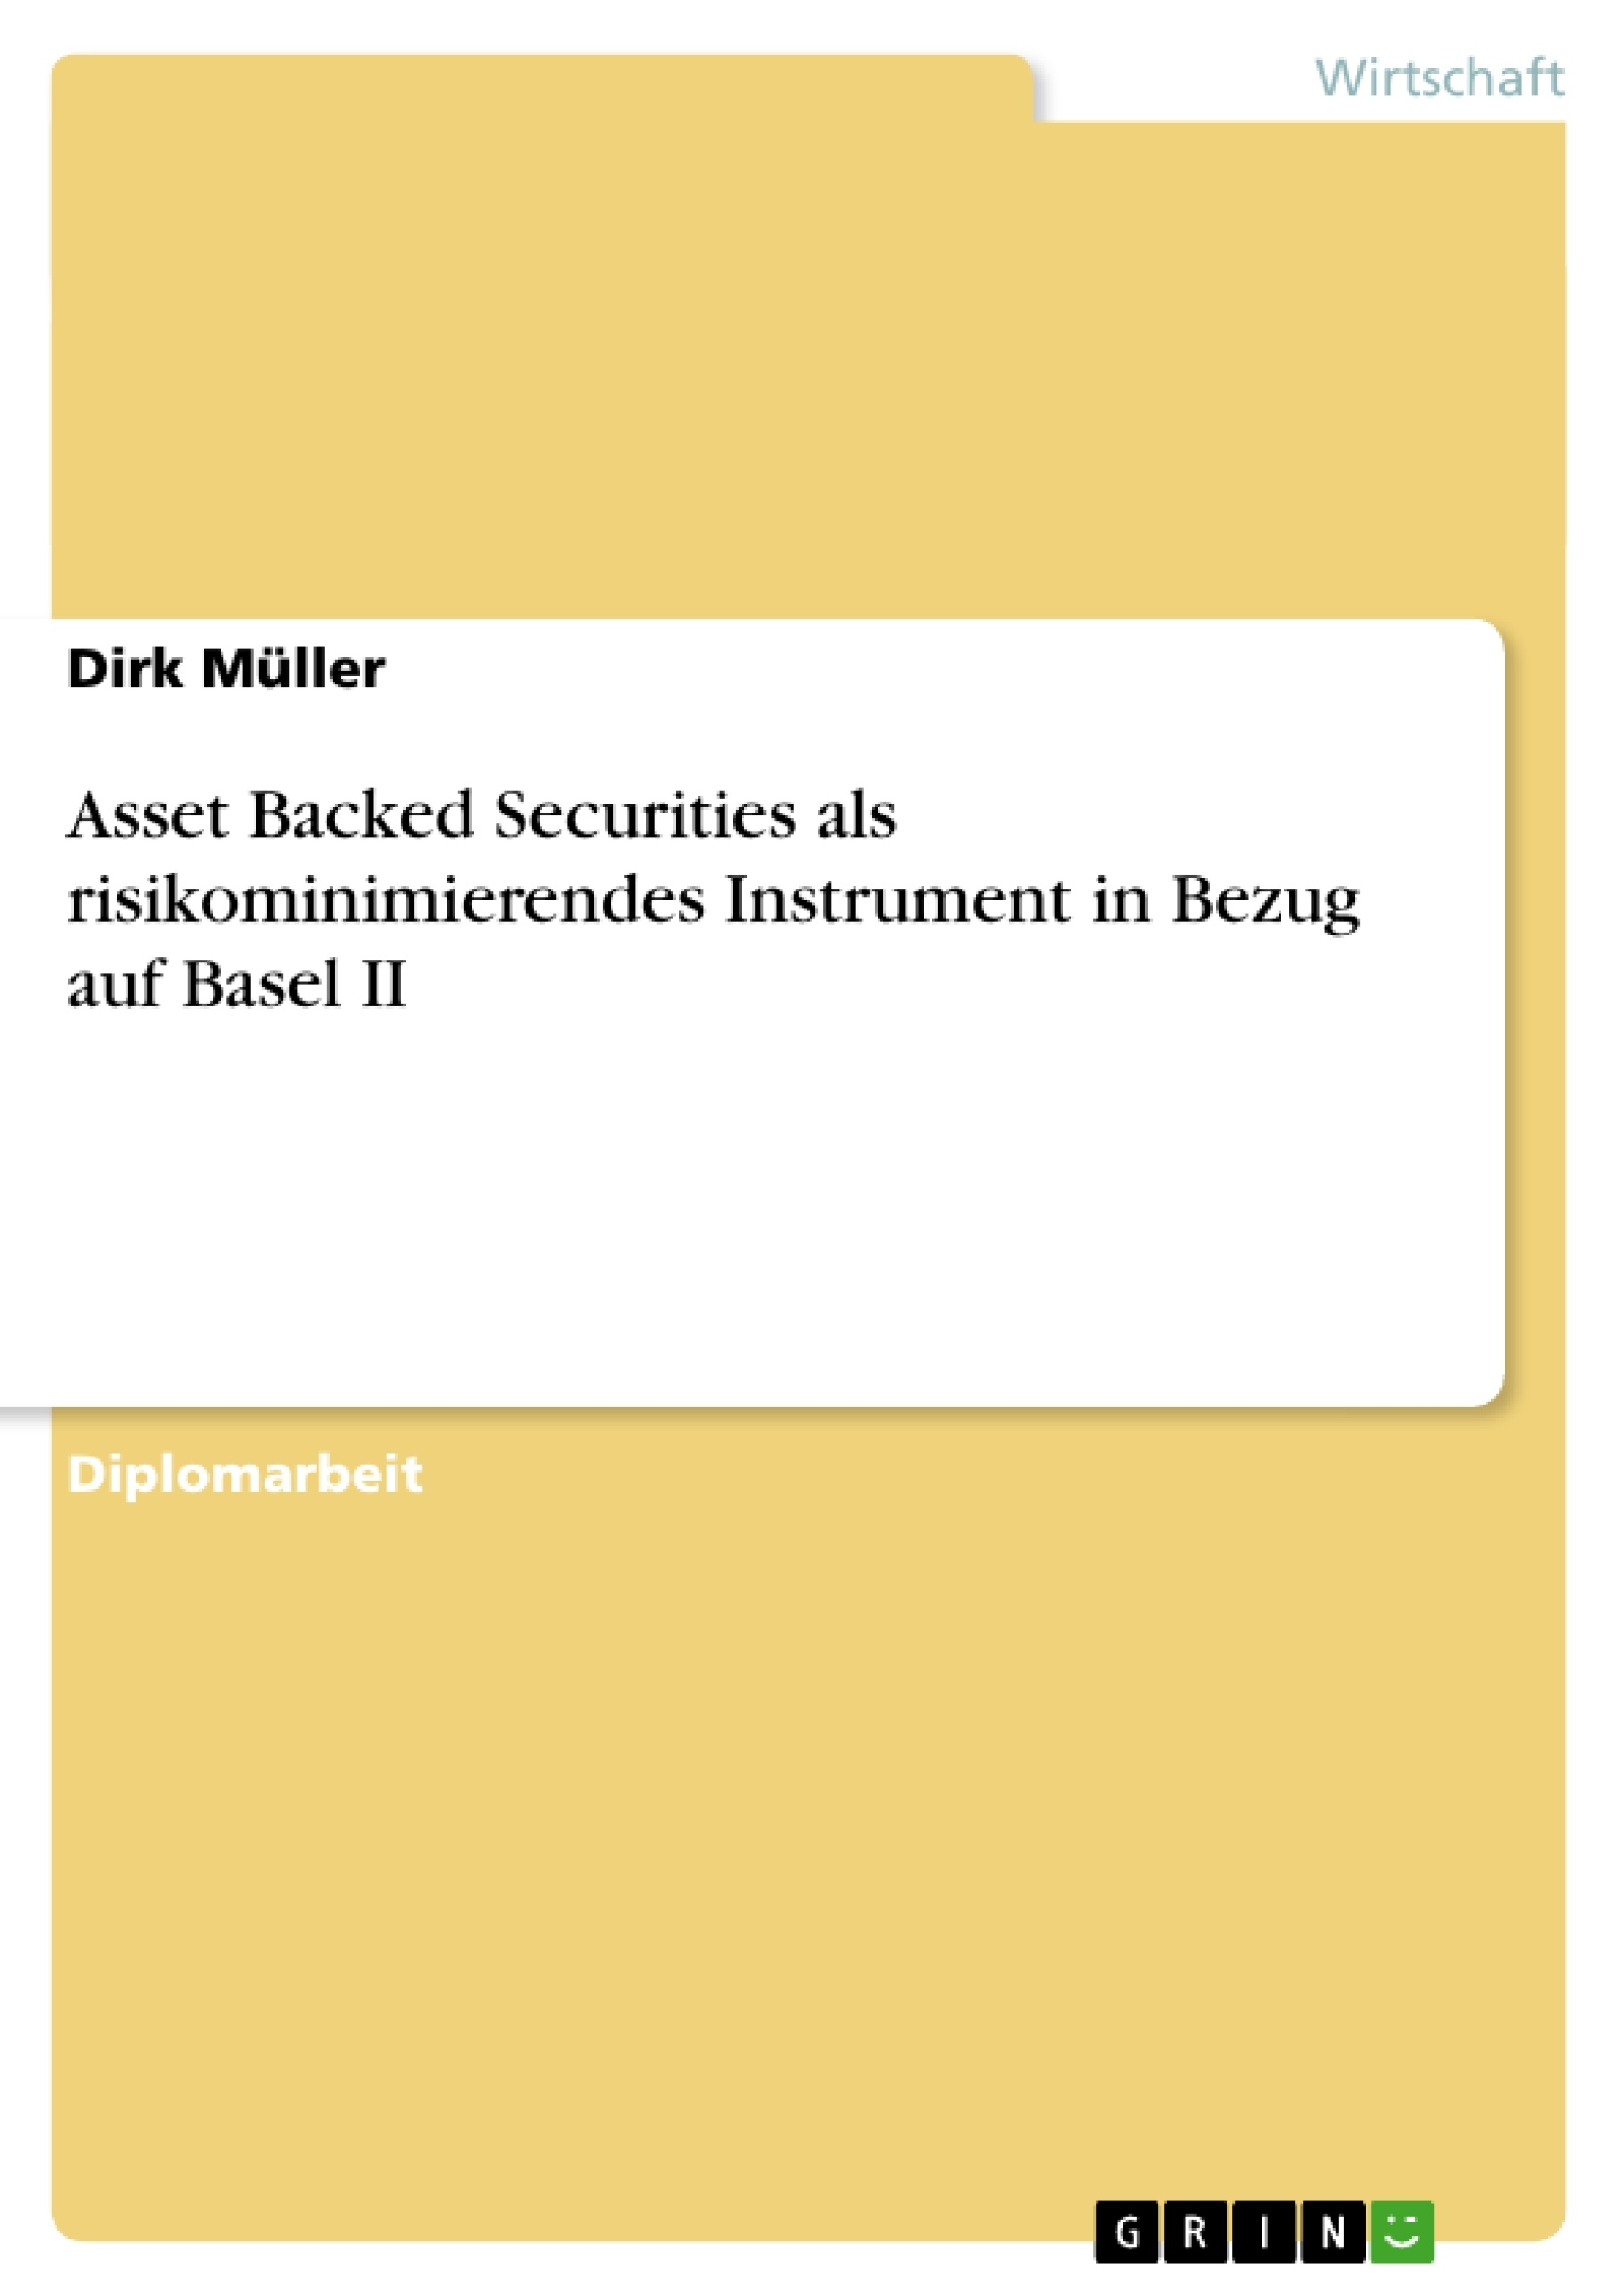 Titel: Asset Backed Securities als risikominimierendes Instrument in Bezug auf Basel II